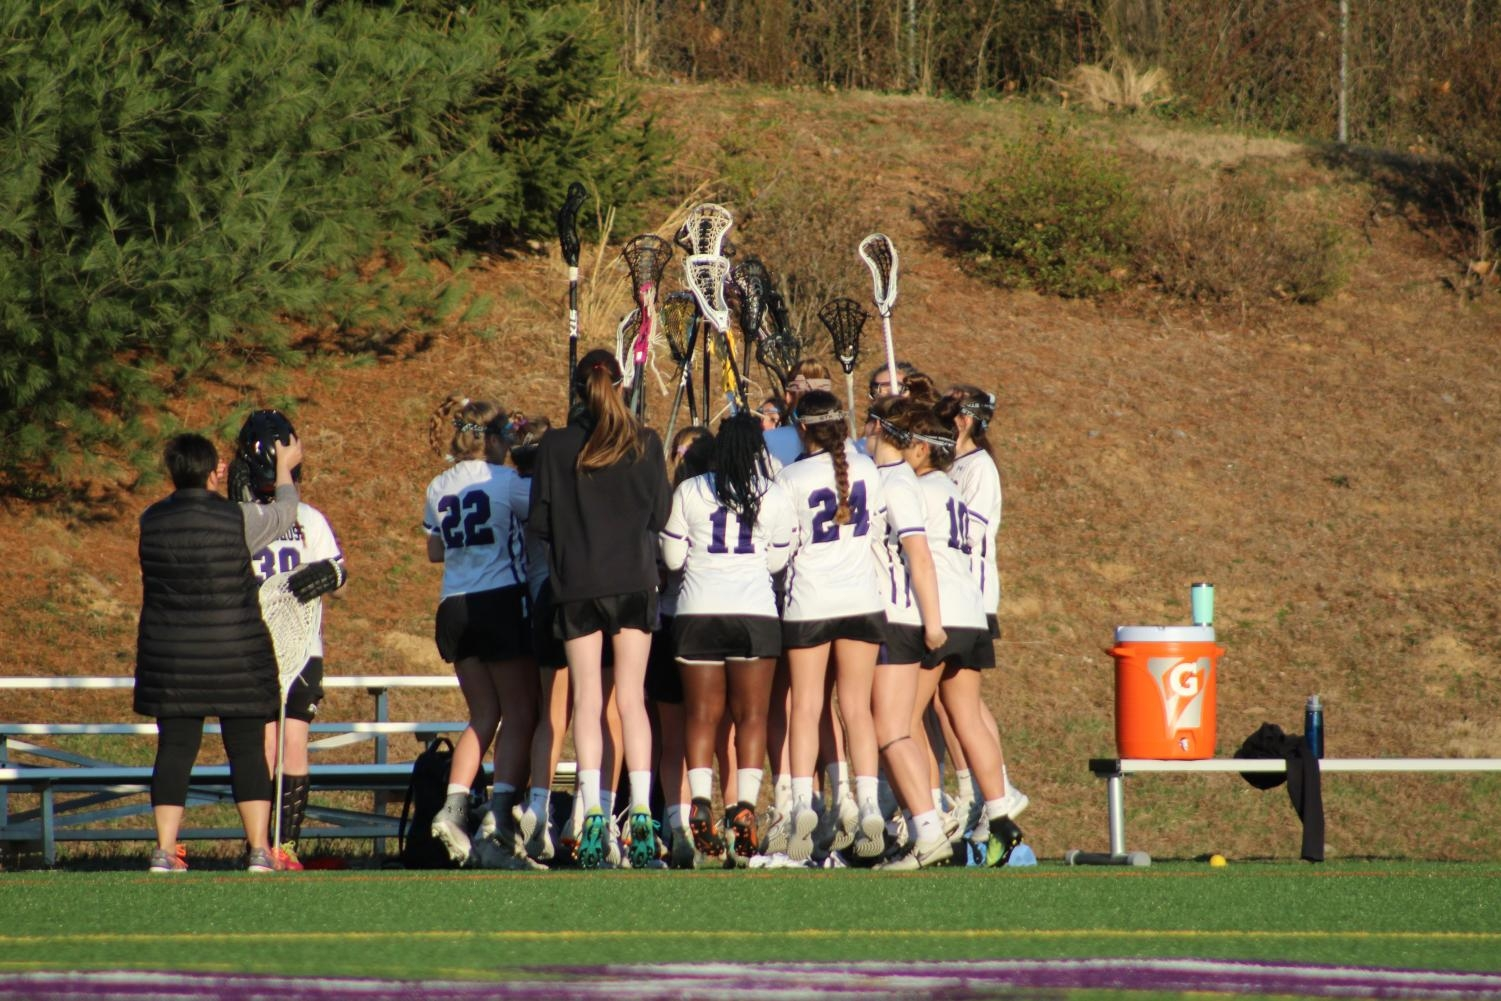 JV Lacrosse cheers together before their game against Holton-Arms.